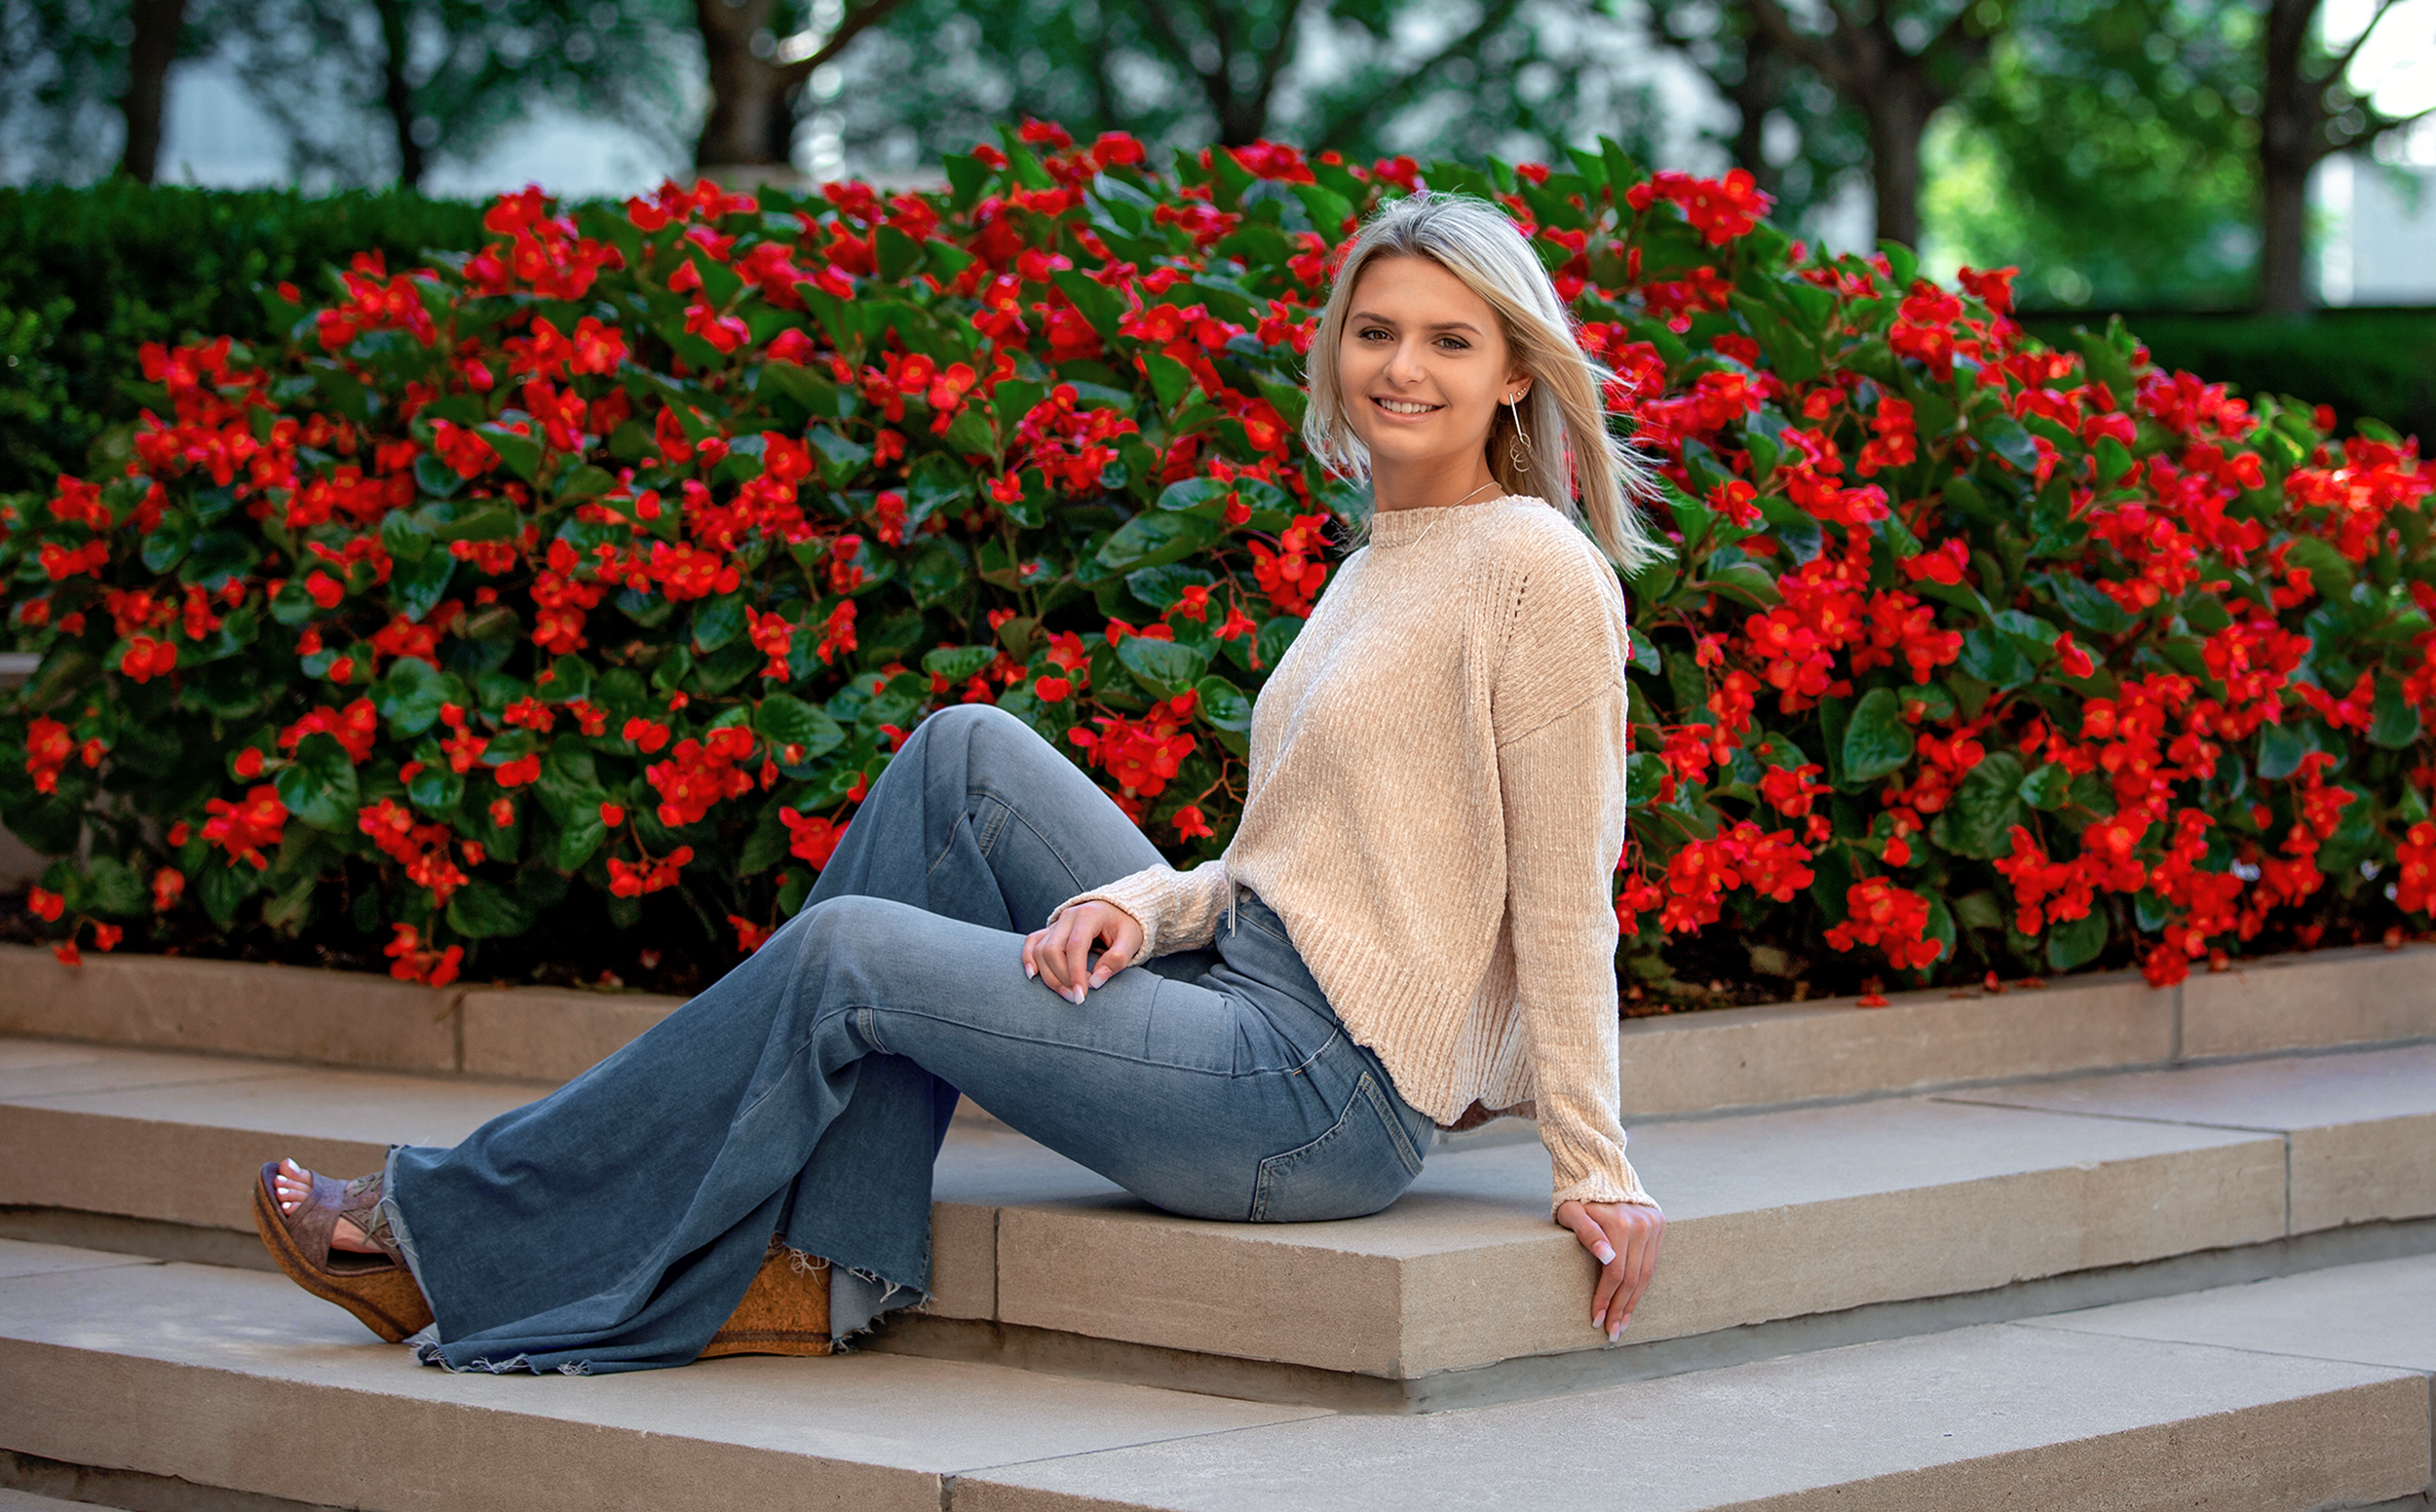 A young blonde girl wearing bell-bottom jeans and a pink sweater sitting three-quarter profile to the camera on a small set of stairs with vibrant red flowers in the background.